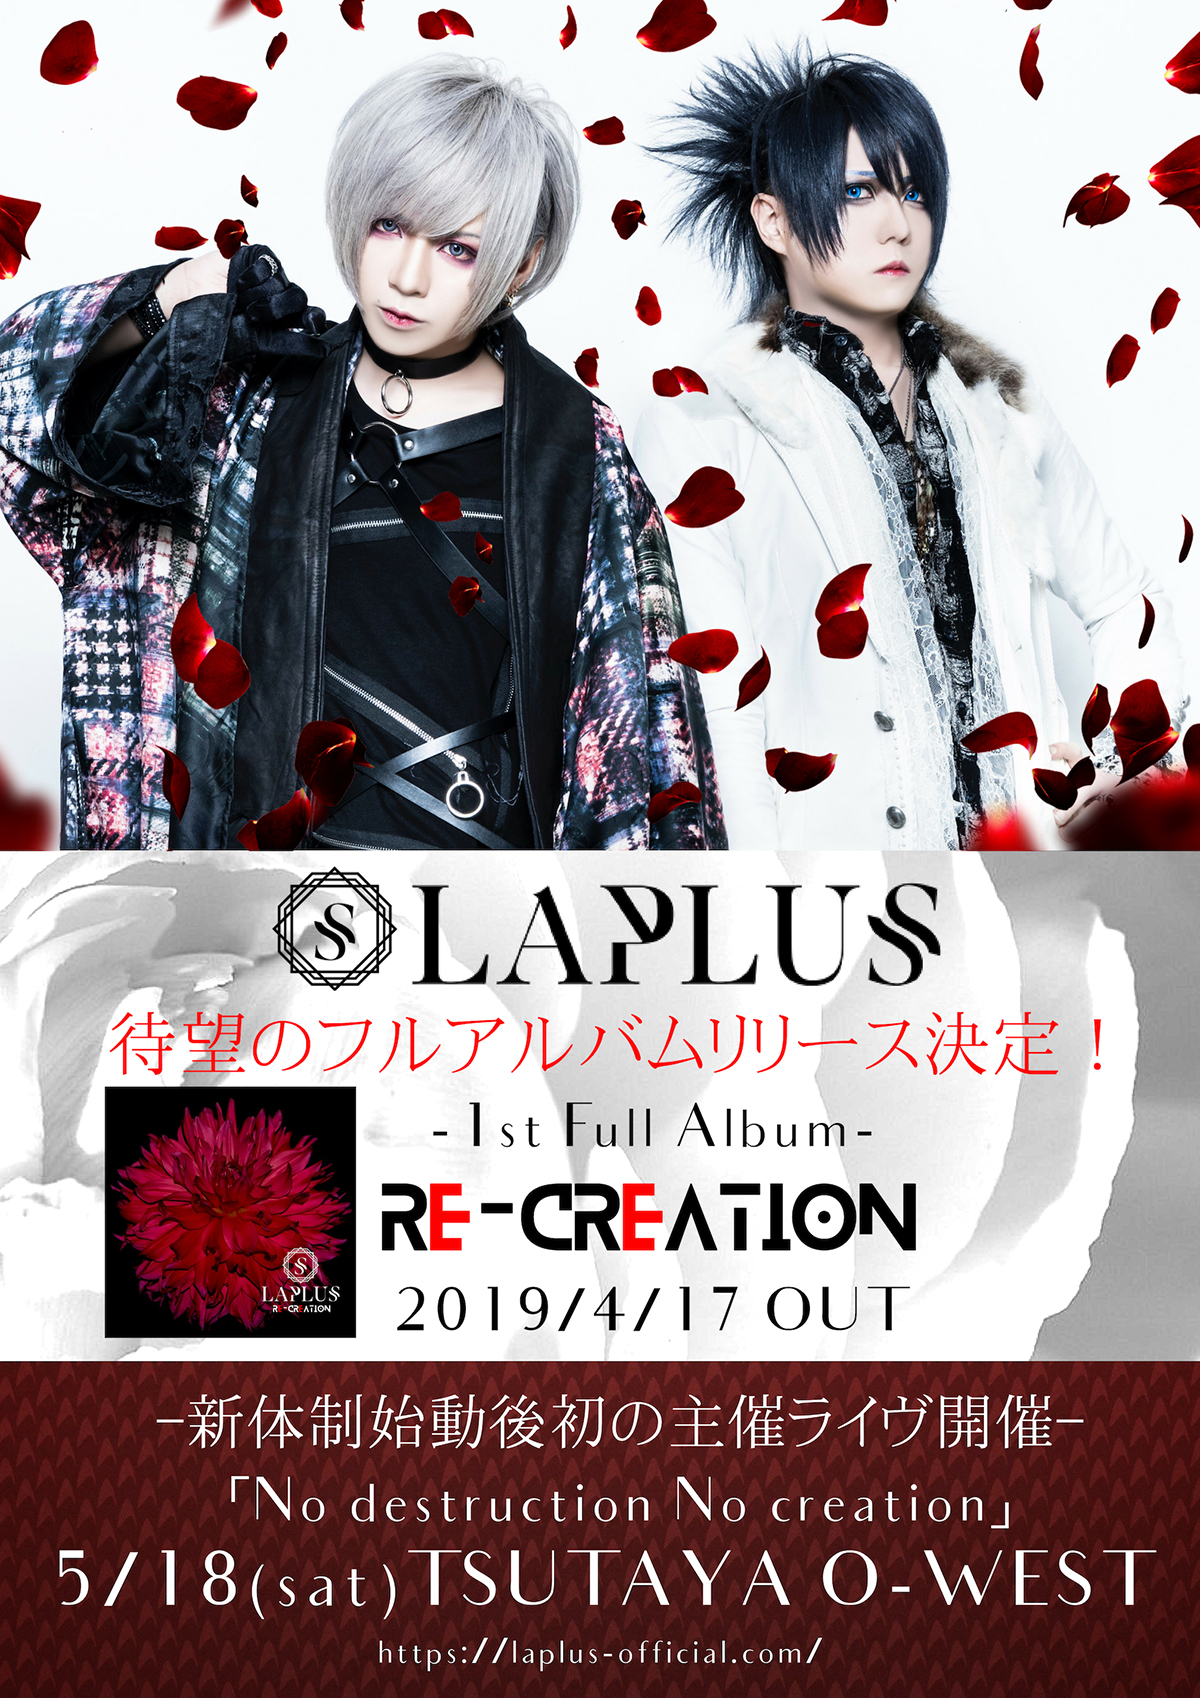 LAPLUS - LAPLUS -1st Full Album -「RE-CREATION」2019/4/17 OUT / 新体制始動後初の主催ライヴ開催—「No destruction No creation」5/18(sat)TSUTAYA O-WEST | ヴィジュアル系ポータルサイト「ViSULOG」